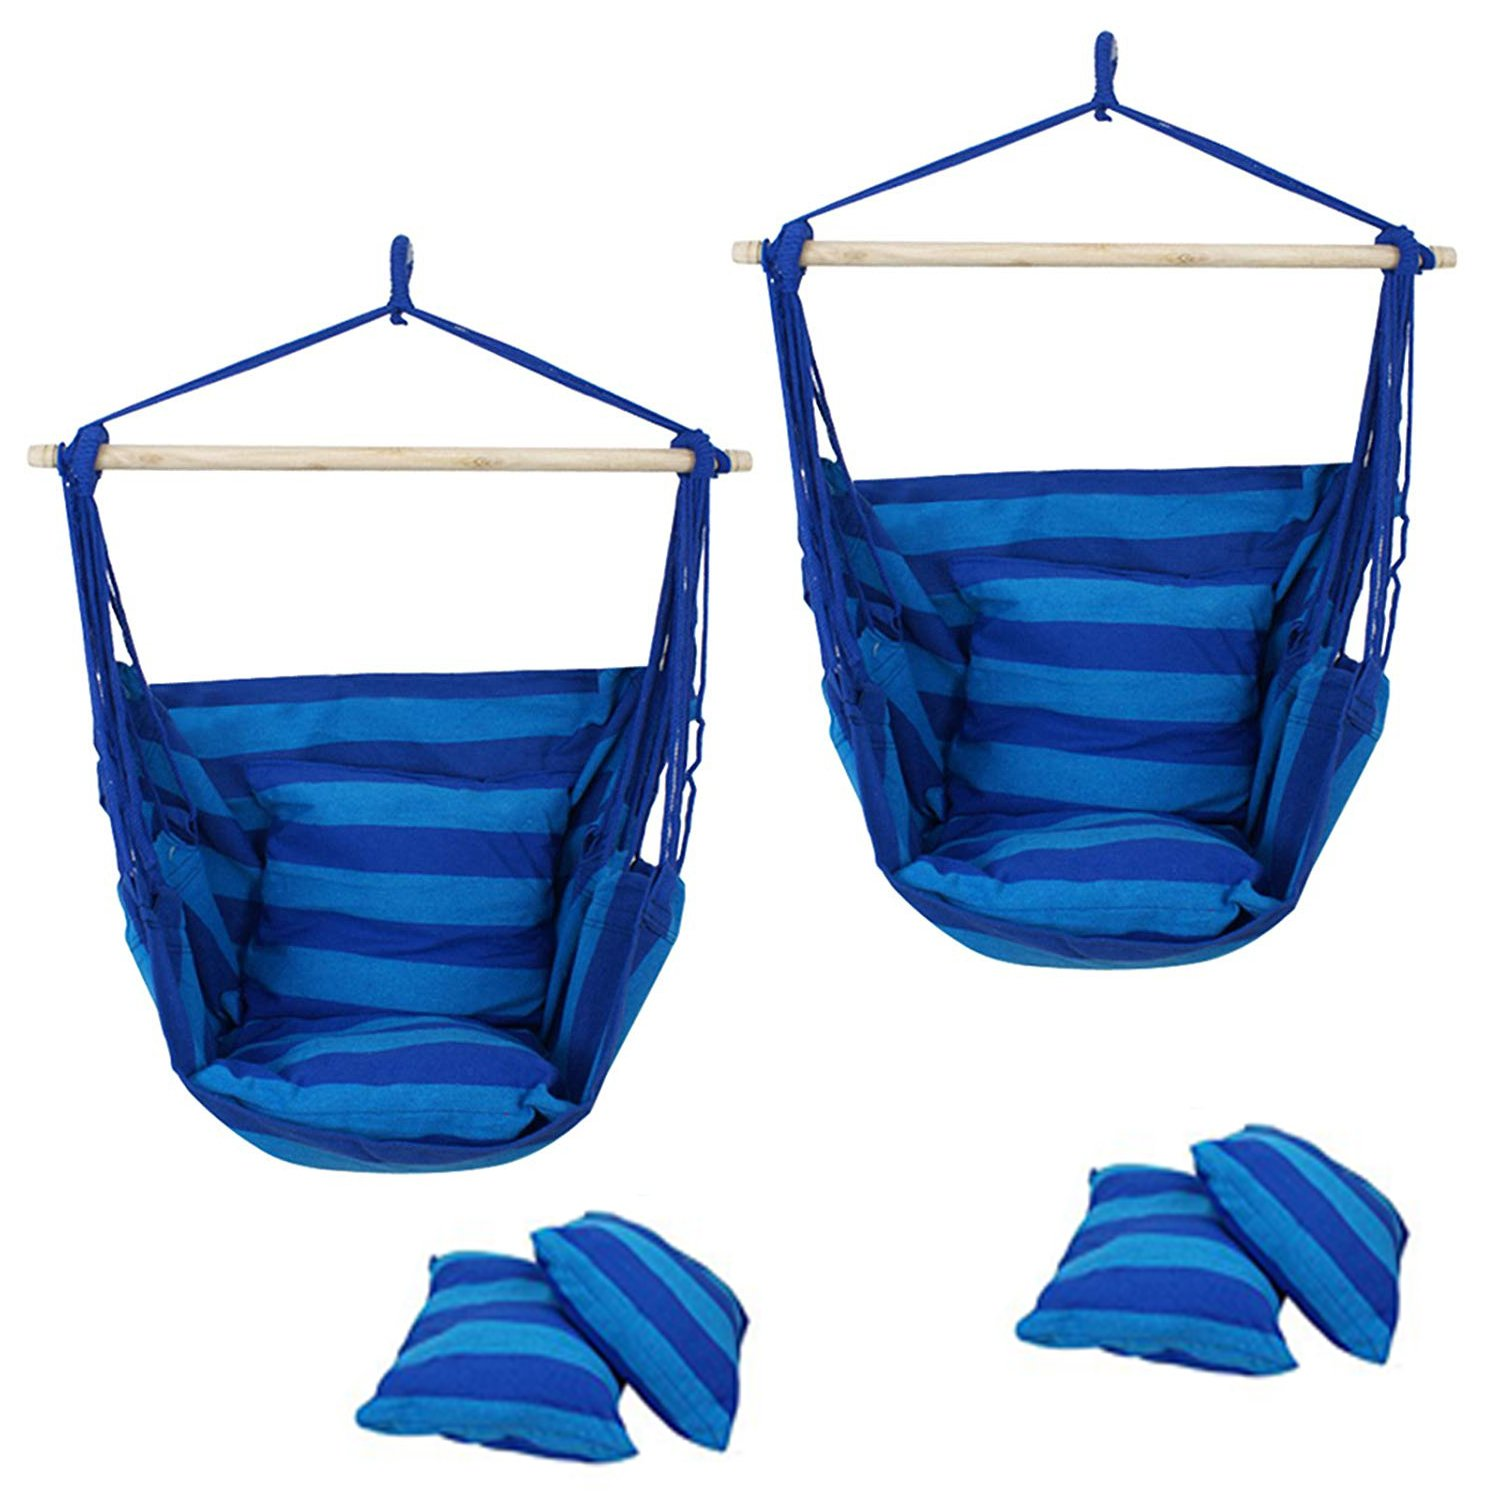 F2C Pack of 2 Cotton Hammock Chair Hanging Rope Chair Swing Chair Seat Porch Sky Swing Patio Chair (2PCS Blue)